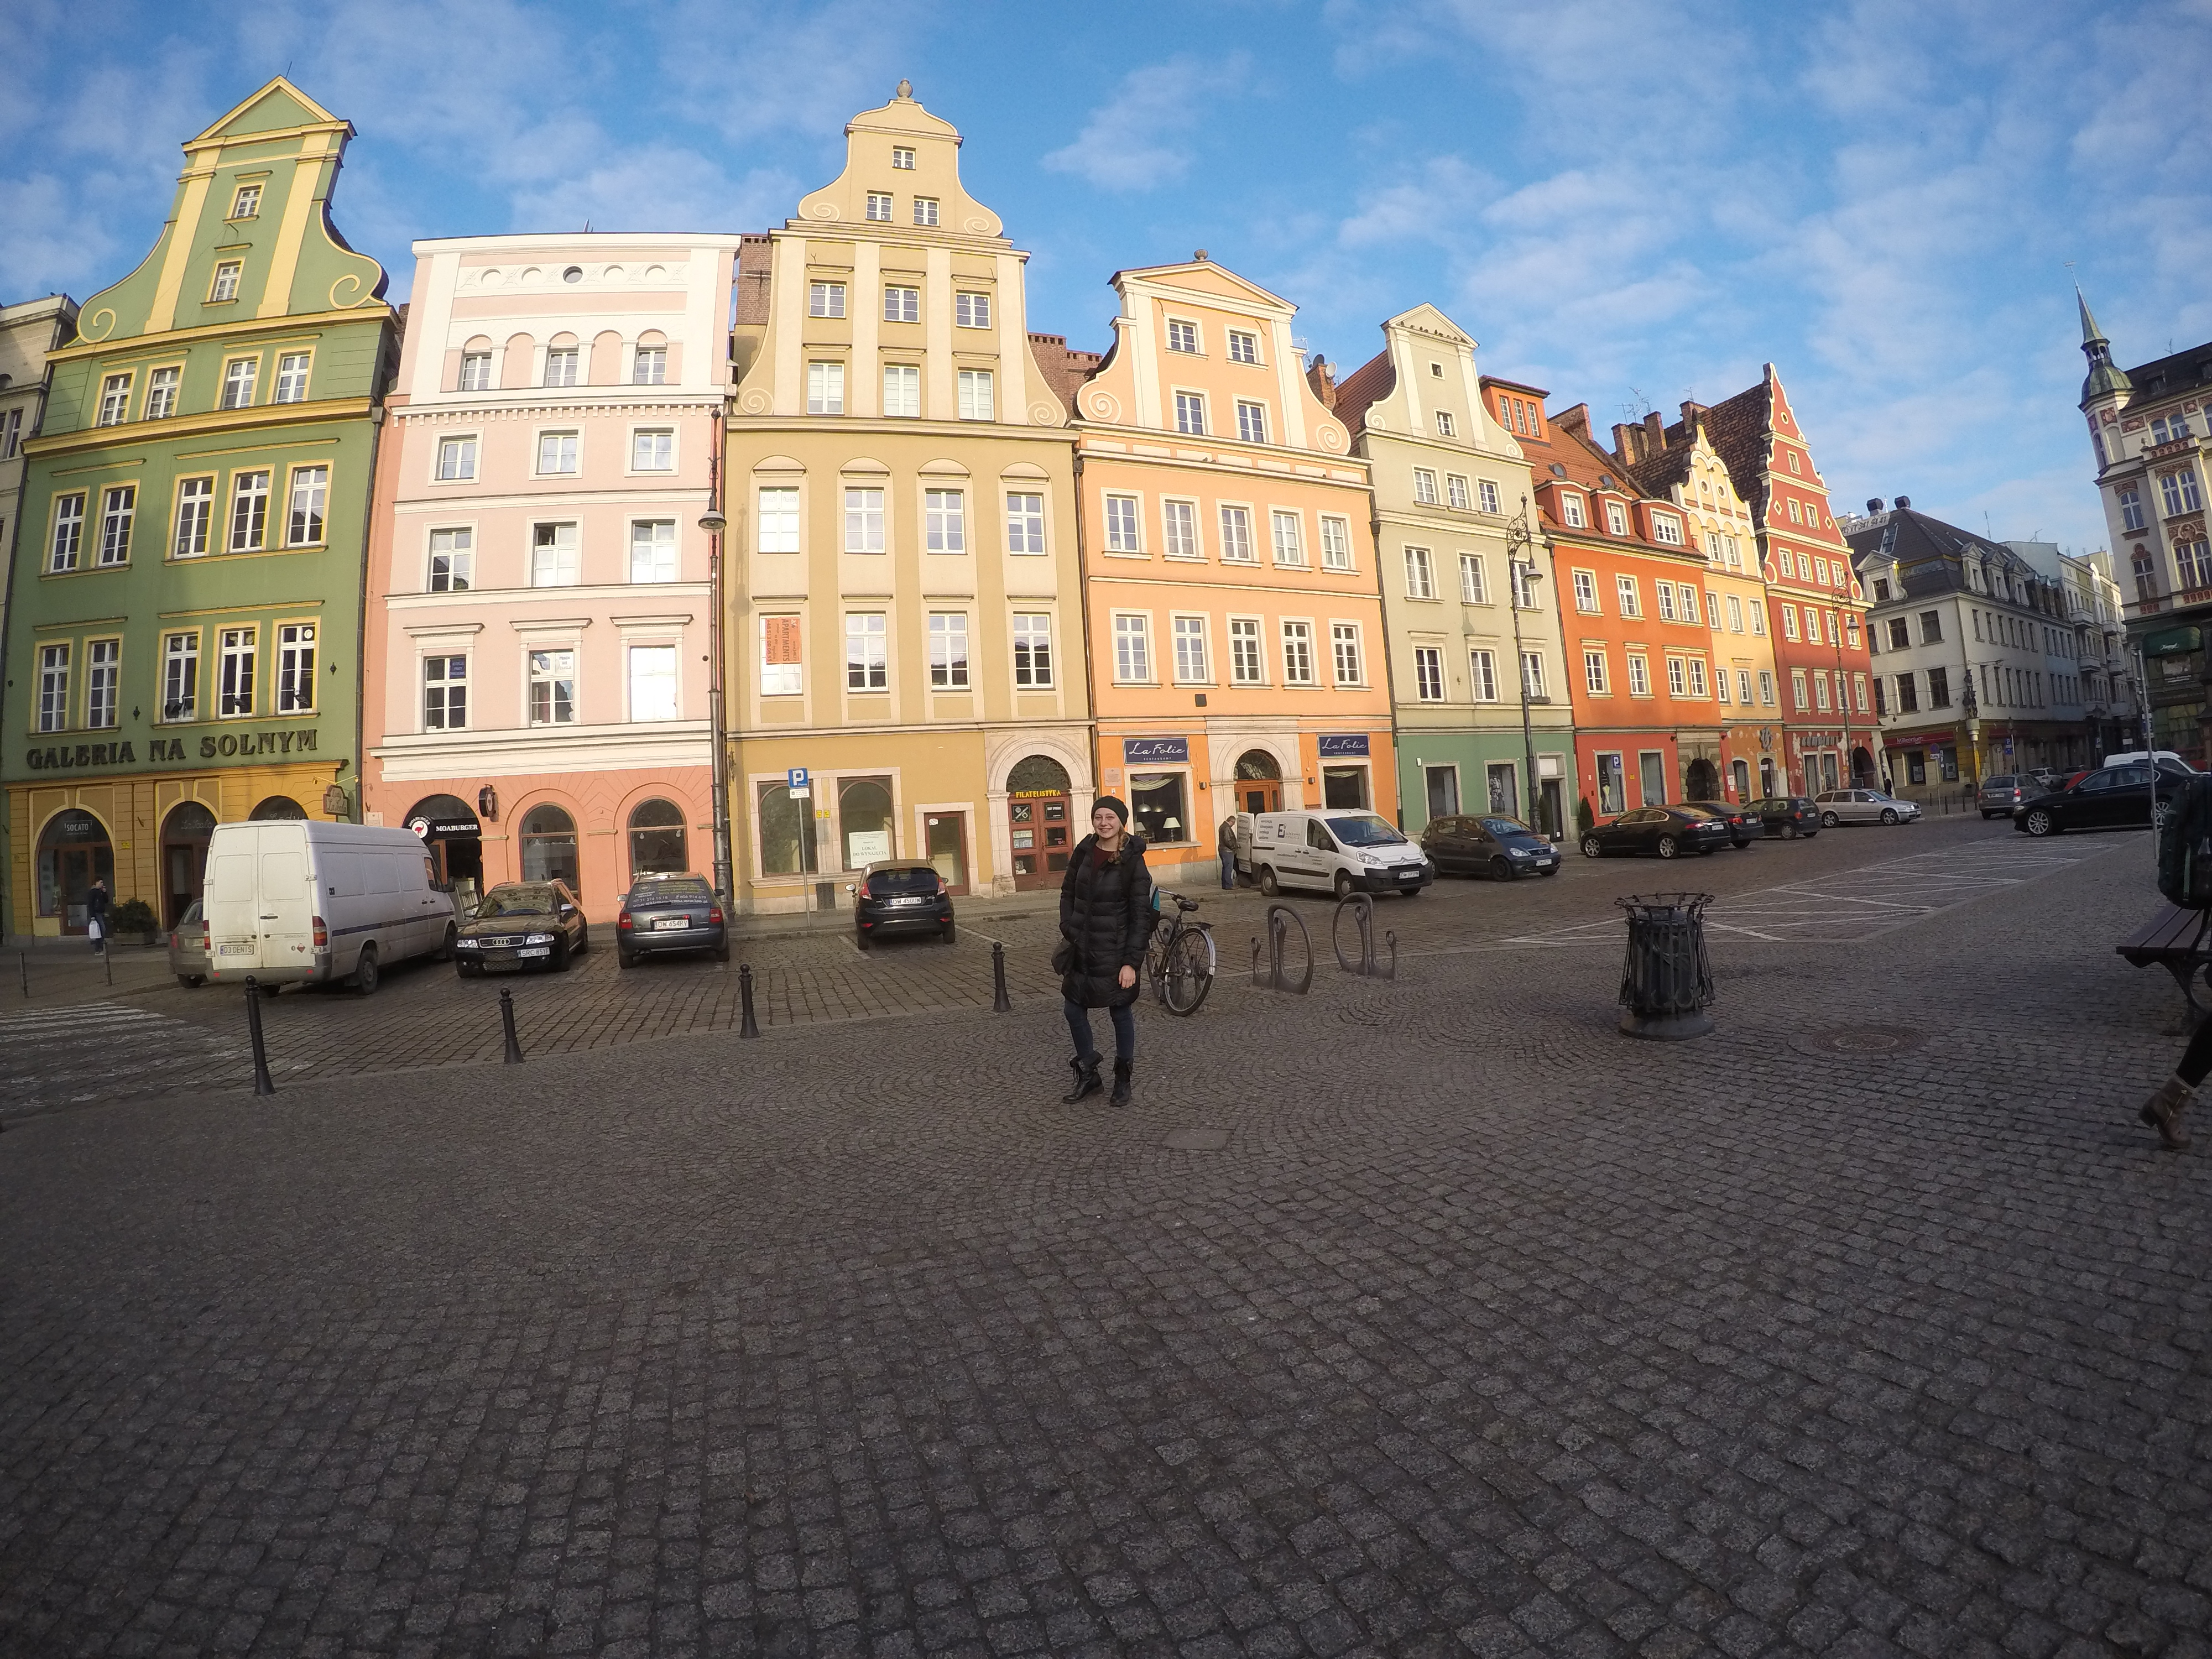 The iconic buildings in Wroclaw